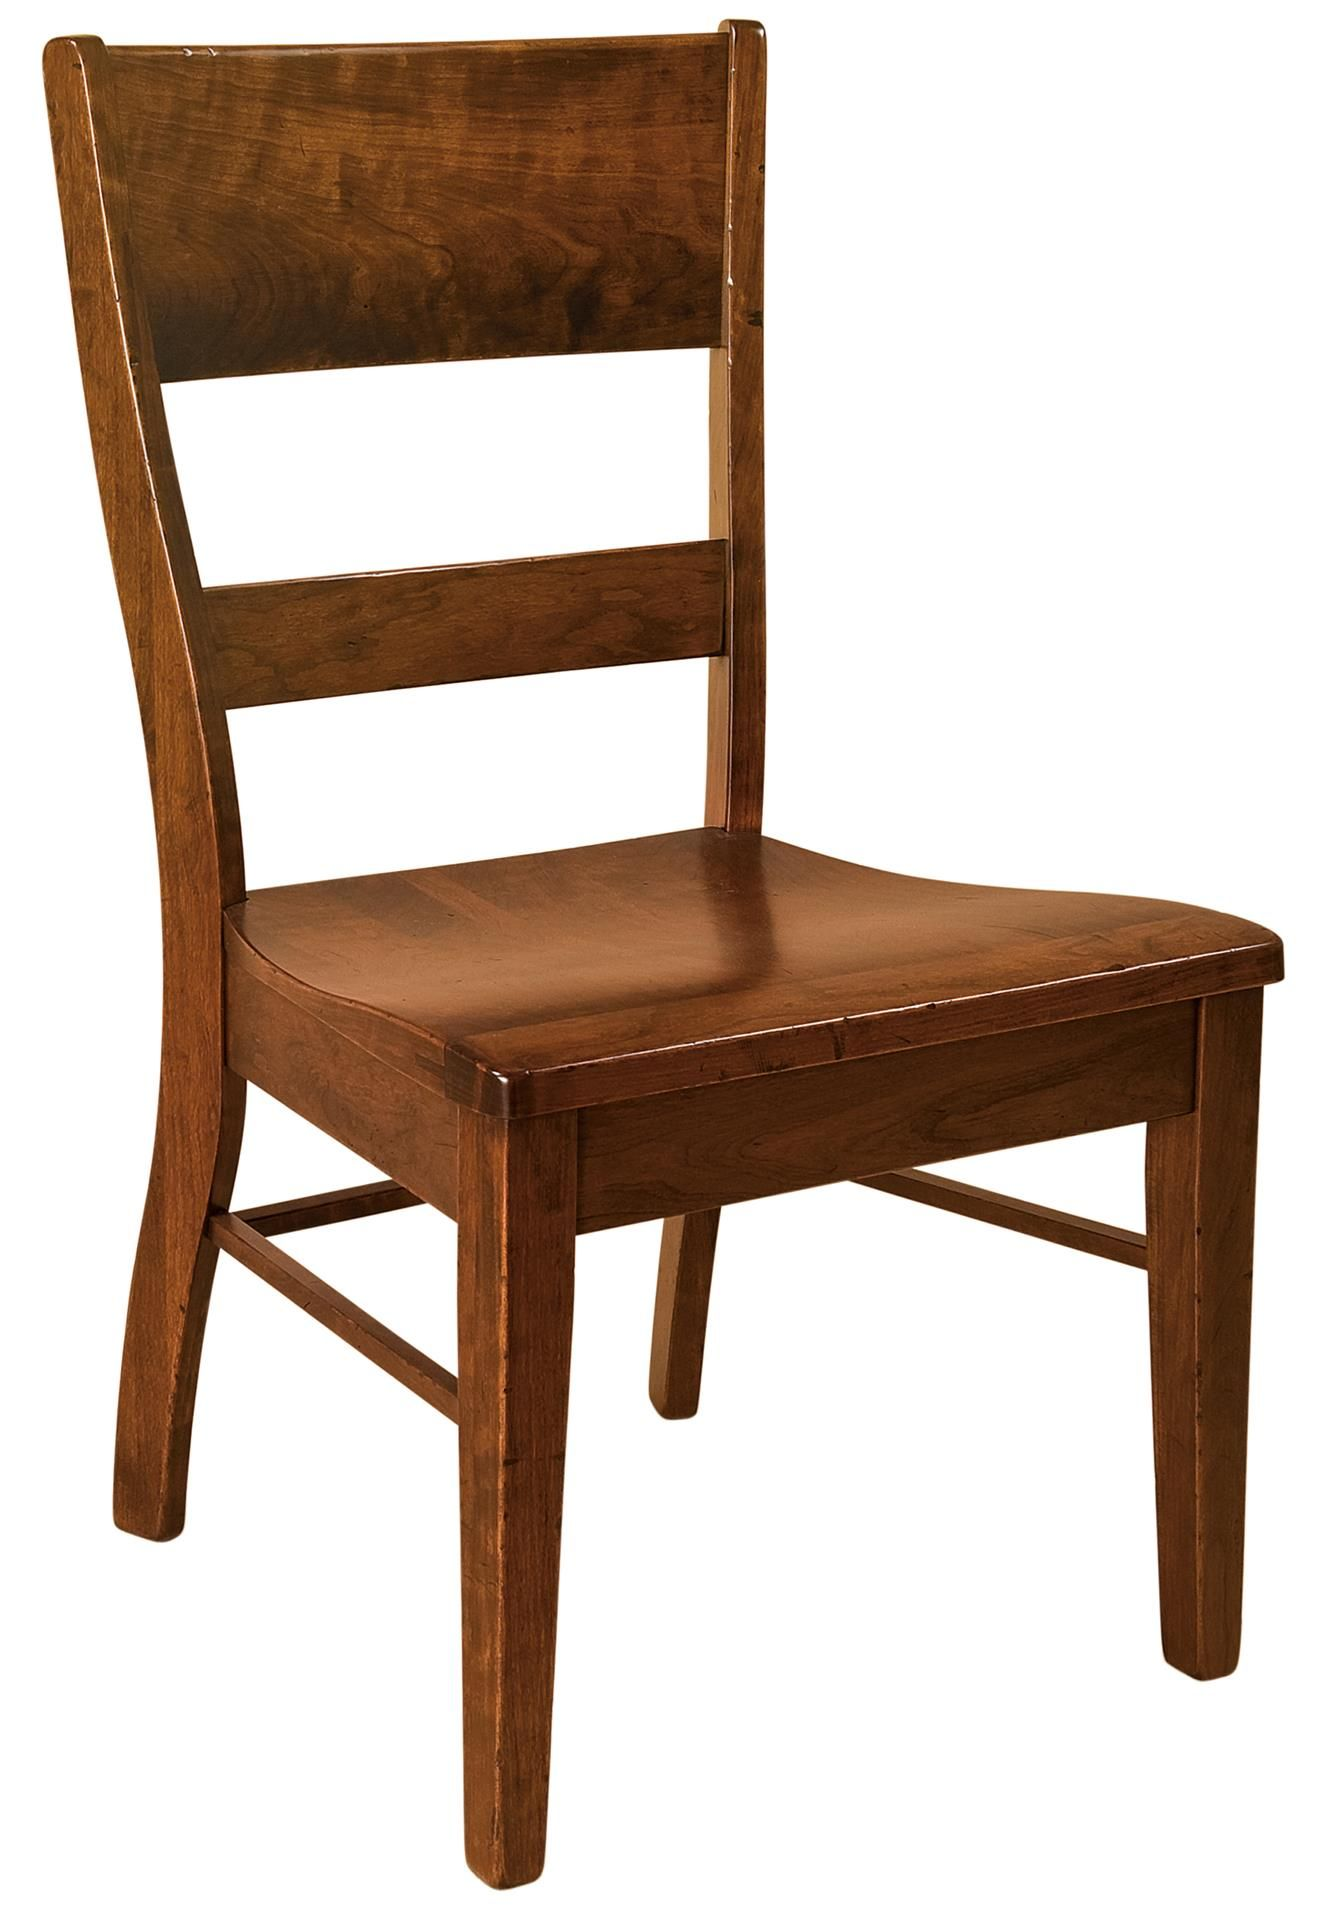 Gallery pictures for good quality dining chairs carson armchair amish - Amish Genesis Dining Chair